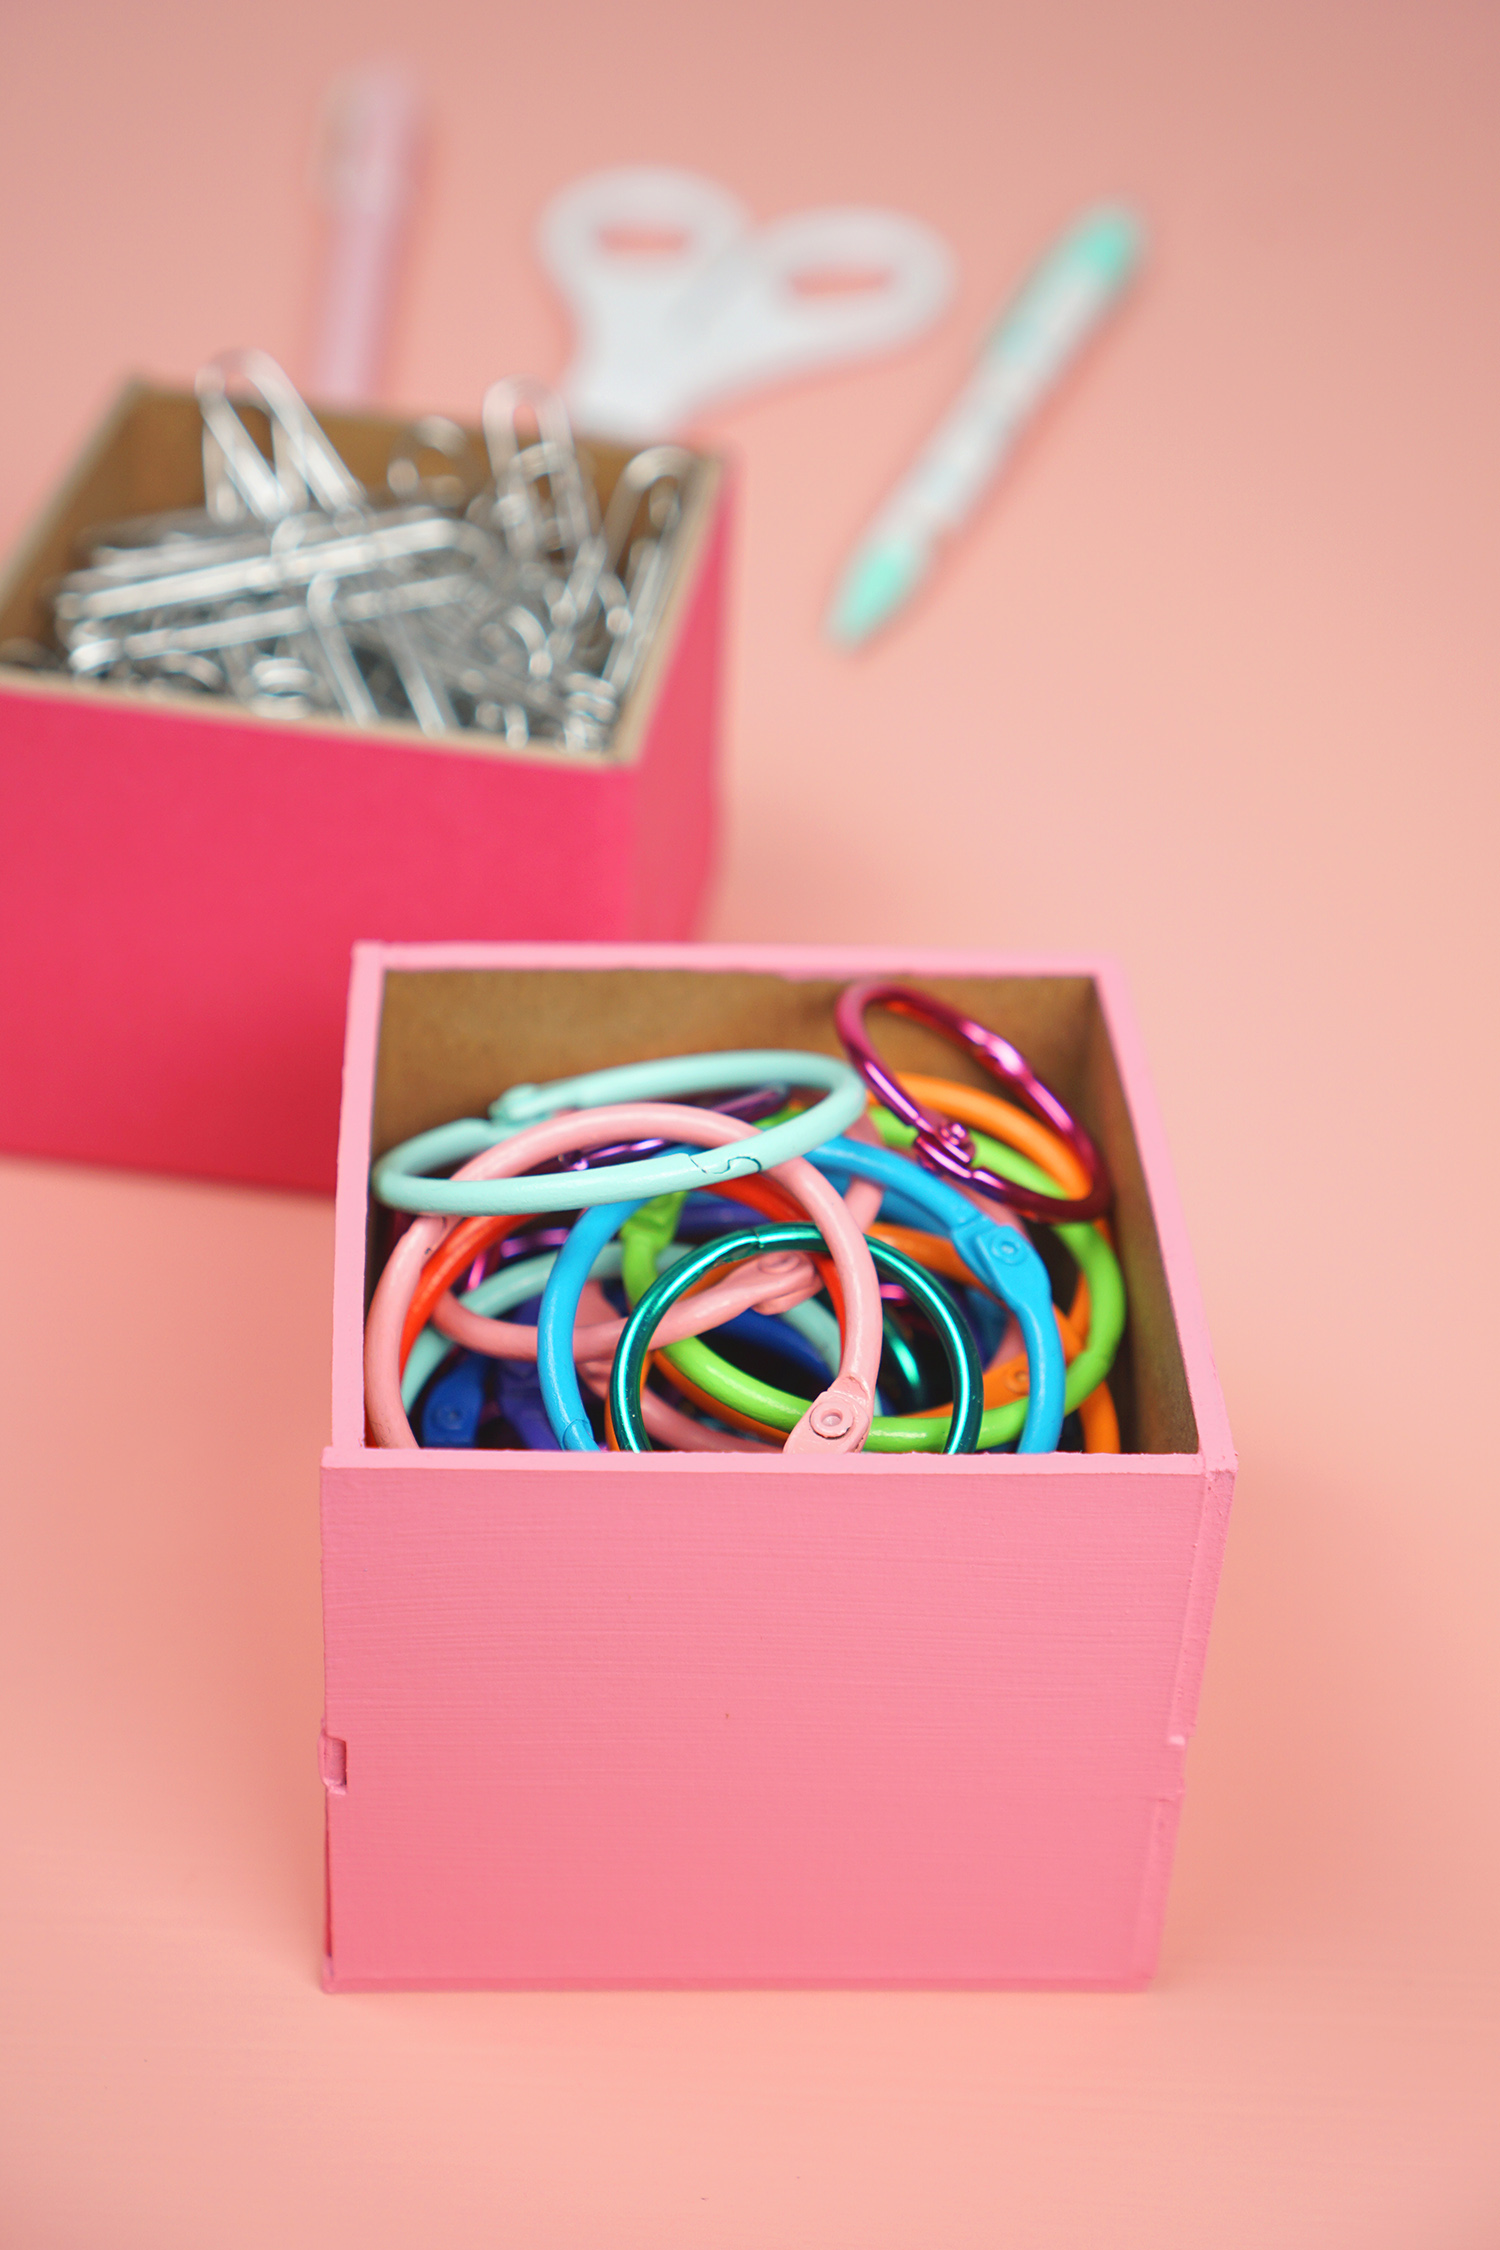 Pink desk organizer box filled with colorful binder rings and office supplies